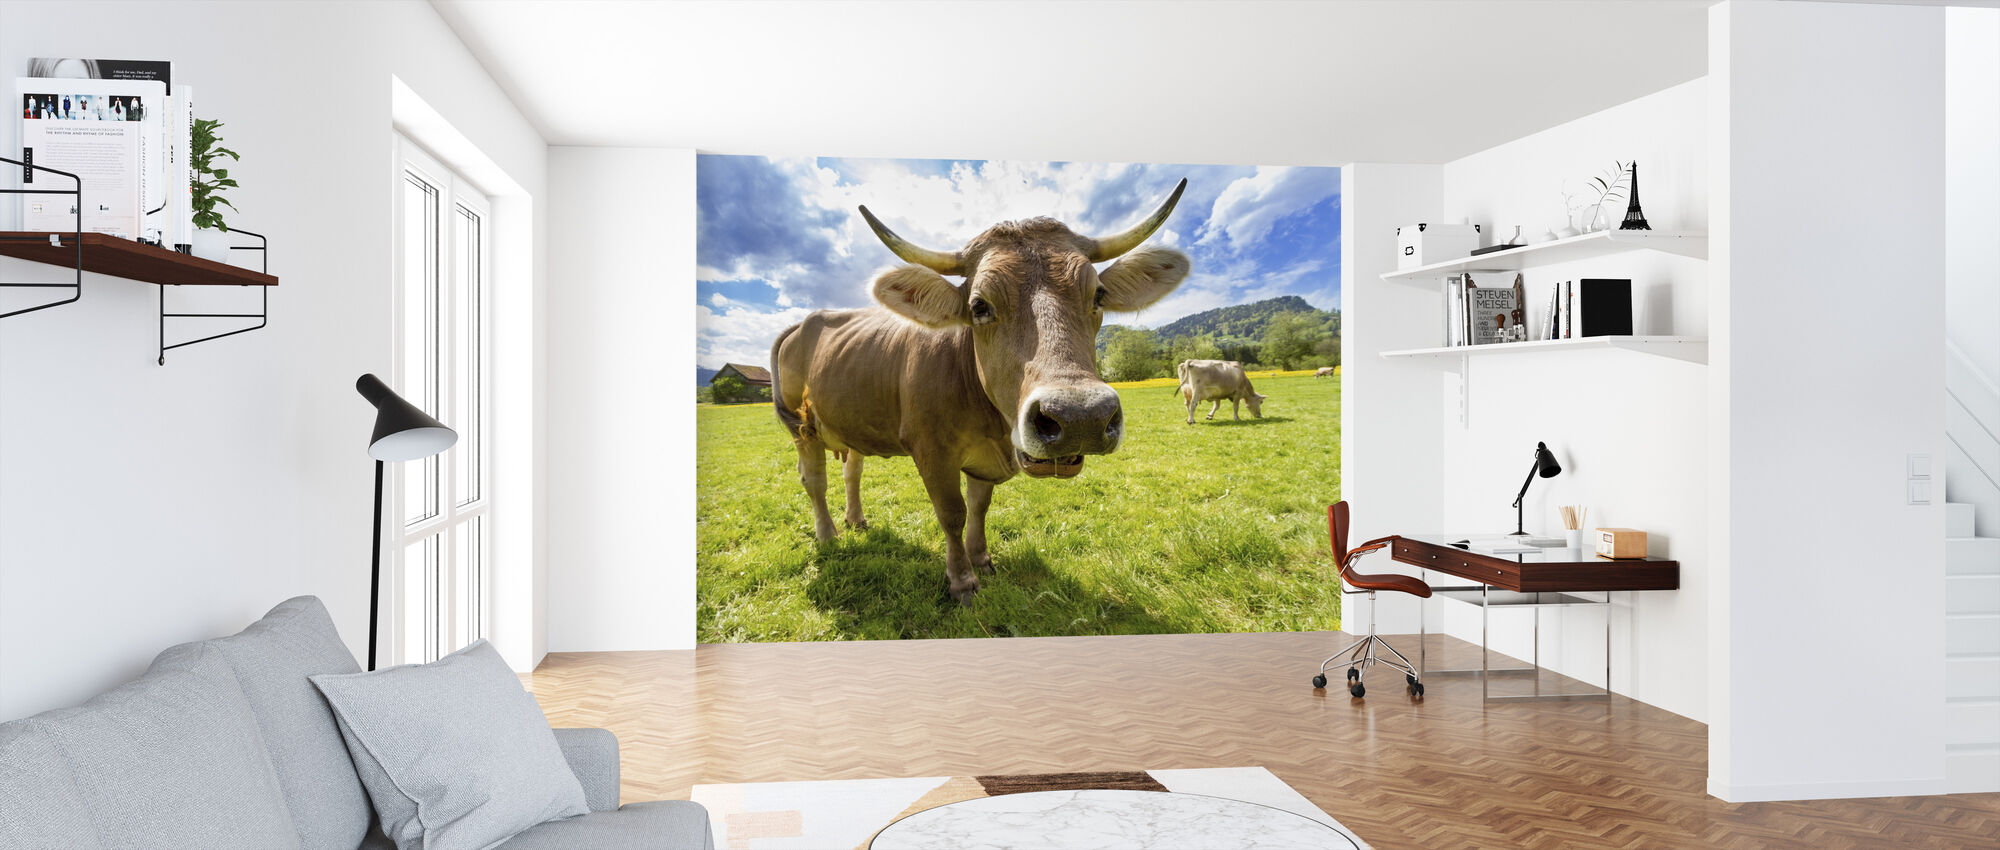 Cow Up Close - Wallpaper - Office